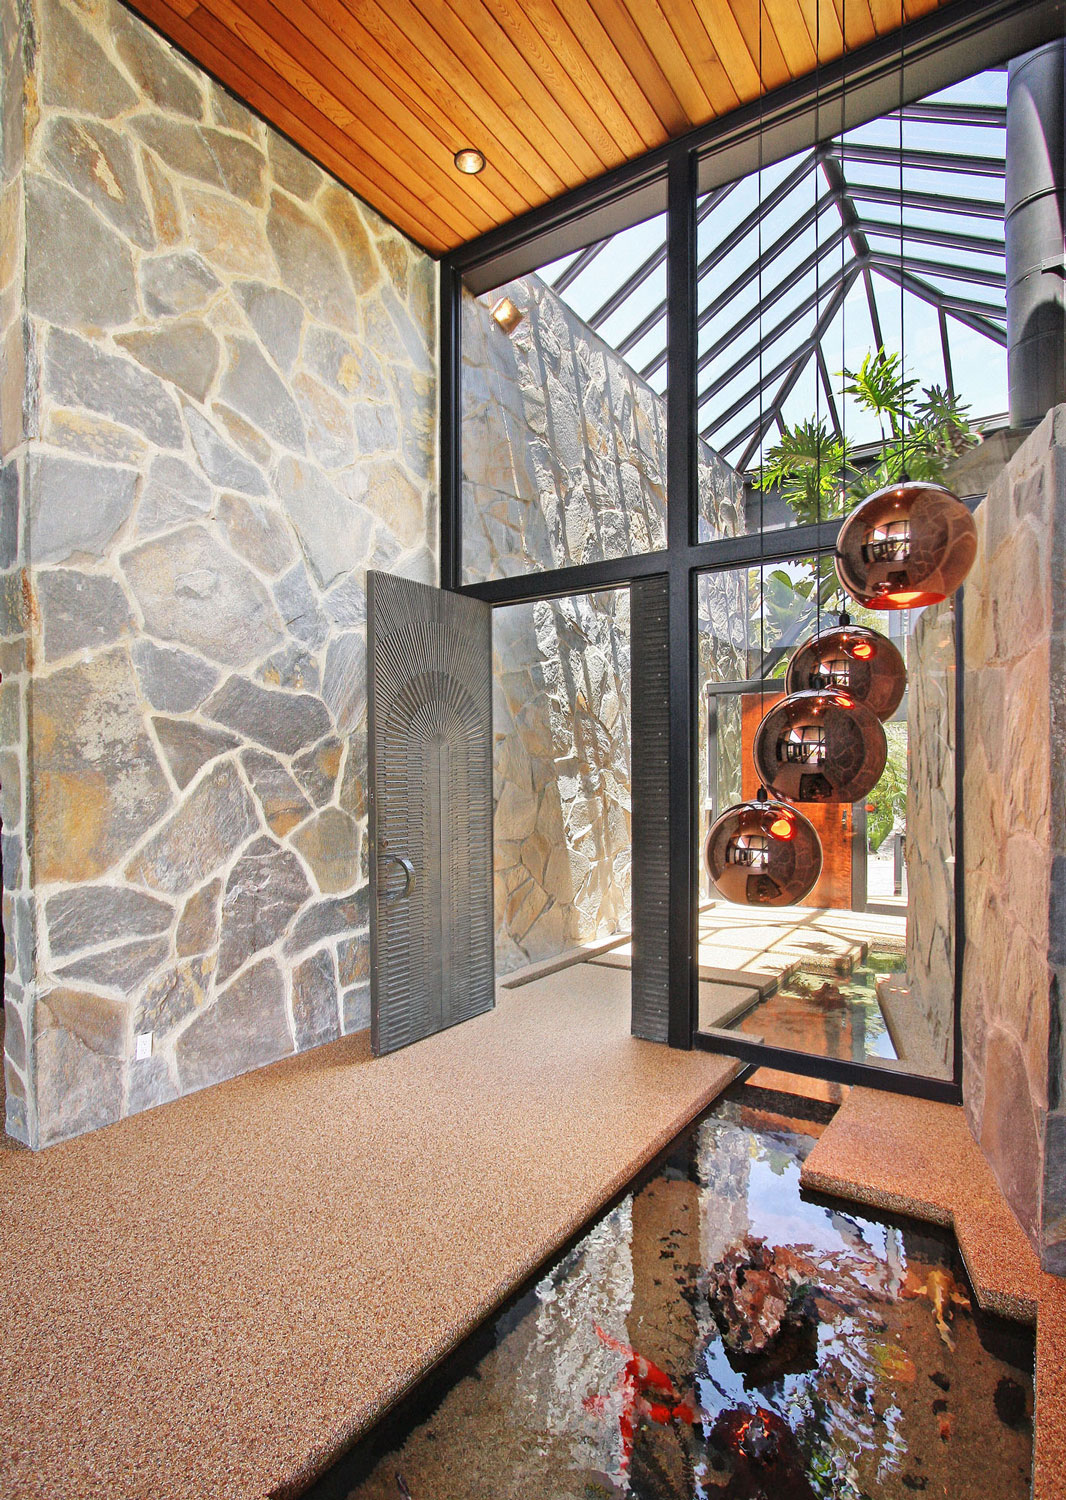 Entrance, Water Feature, Pendant Lighting, Revamped Interior in Beverly Hills